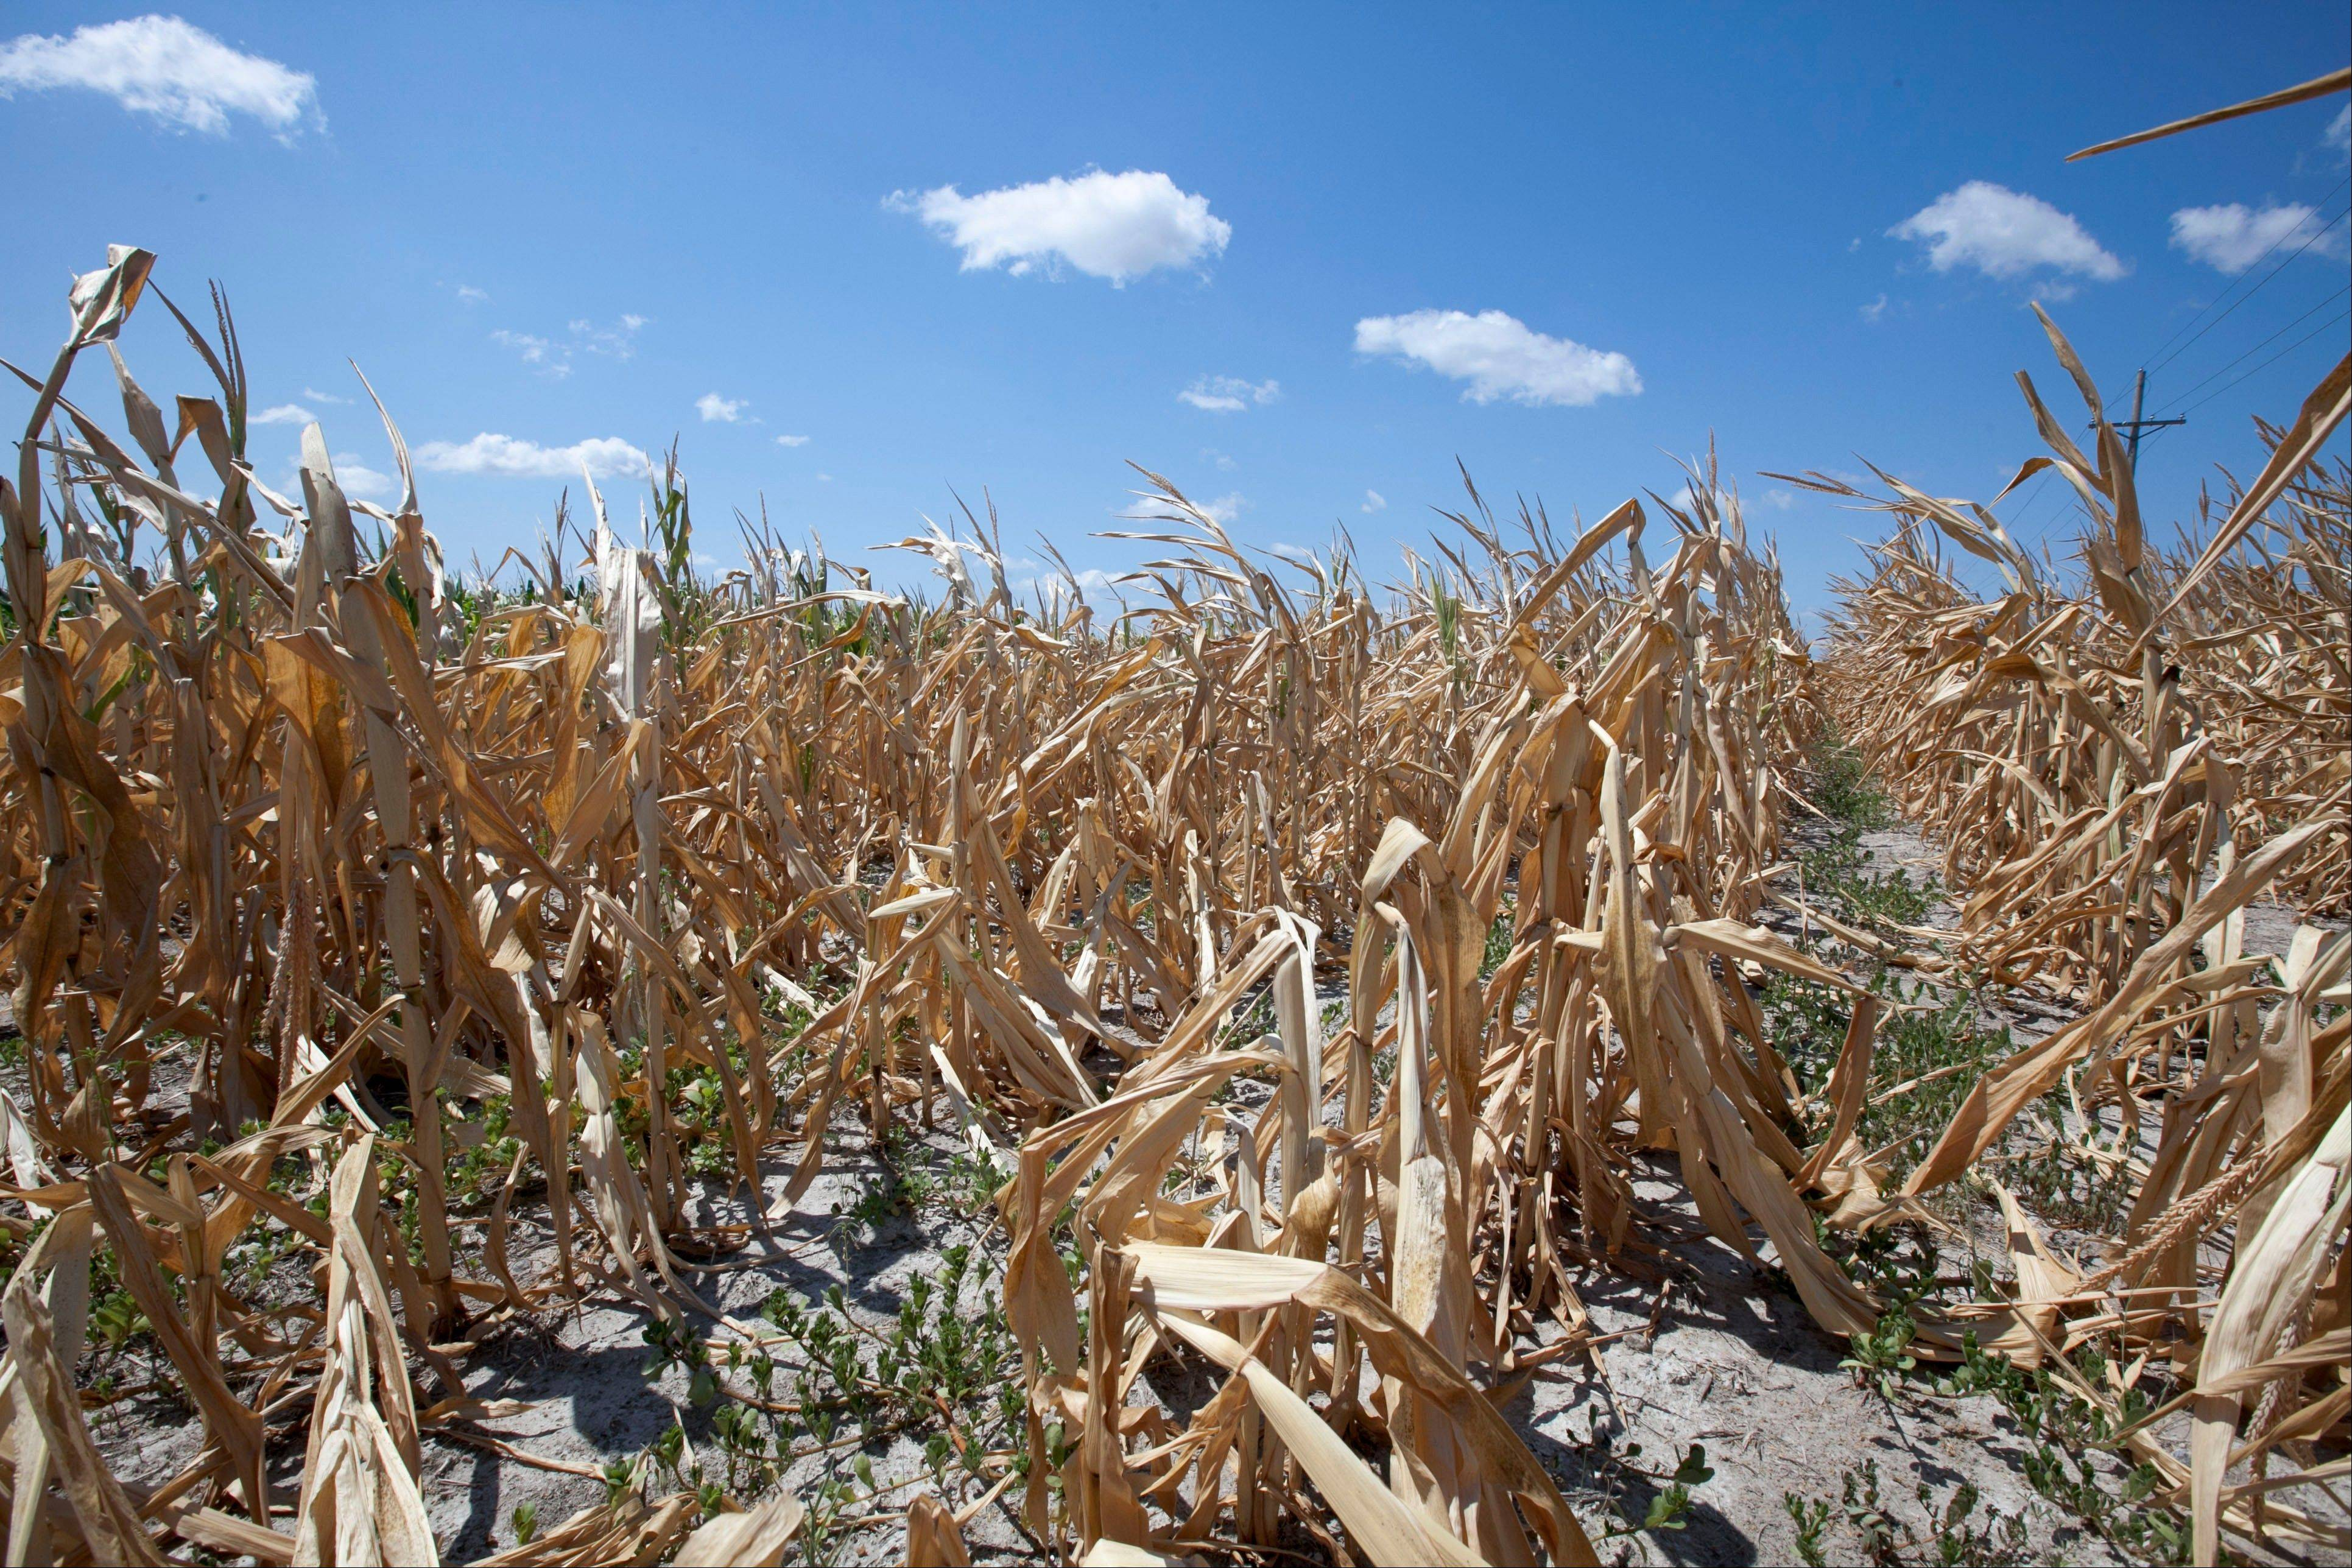 The government slashed its expectations for U.S. corn and soybean production for the second consecutive month Friday, predicting what could be the lowest average corn yield in more than 15 years as the worst drought in decades continued punishing key farm states.